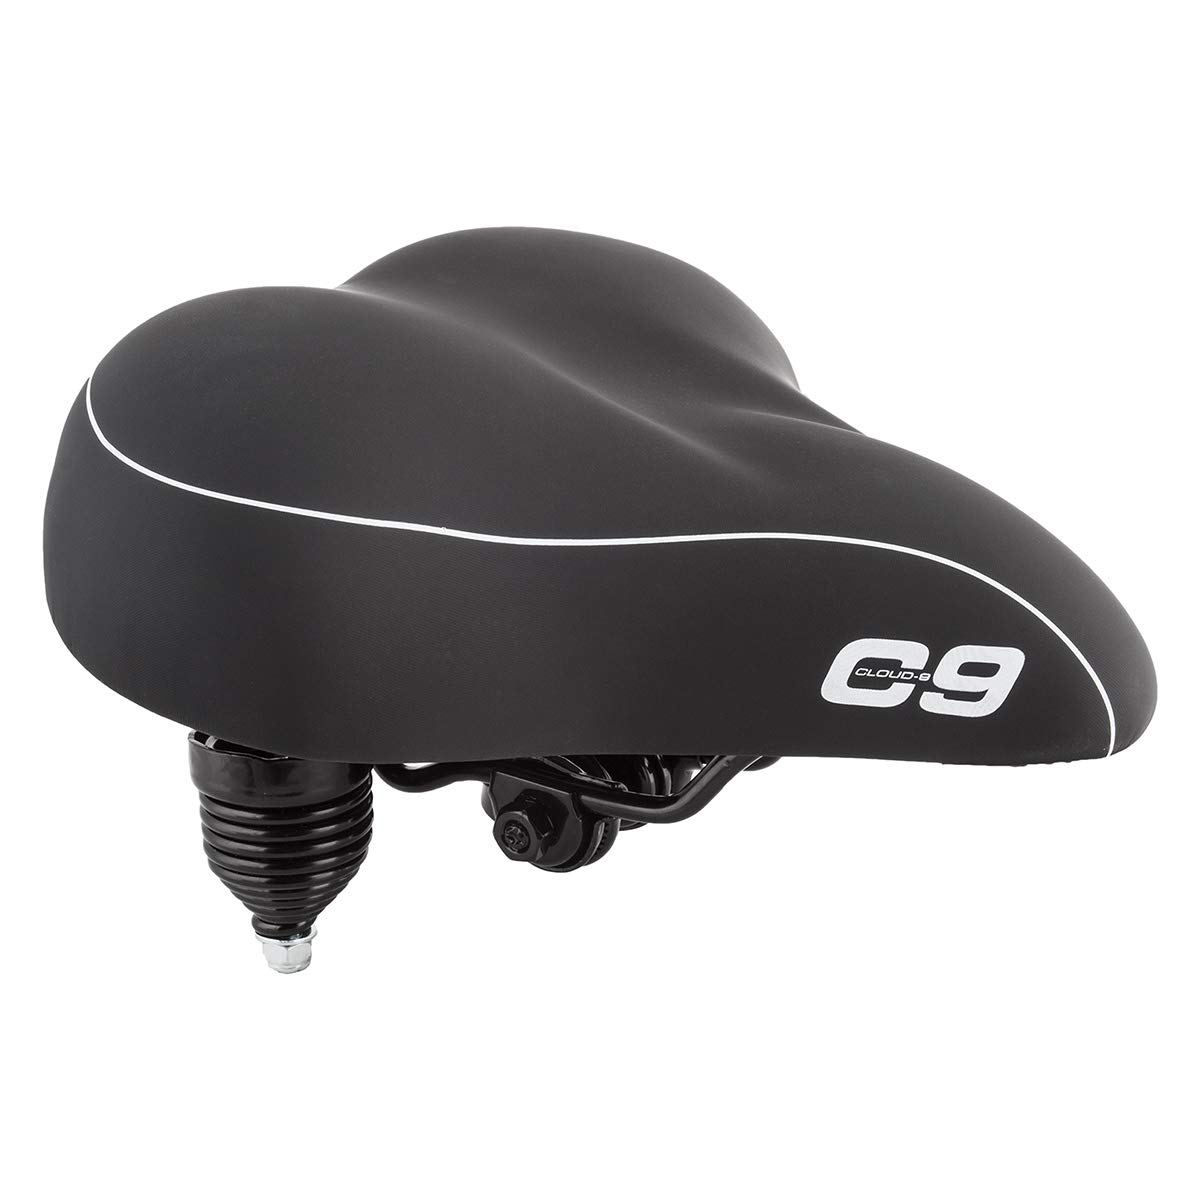 Sunlite Cloud-9 Bicycle Suspension Cruiser Saddle, Cruiser Gel, Tri-color Black by Cloud-9